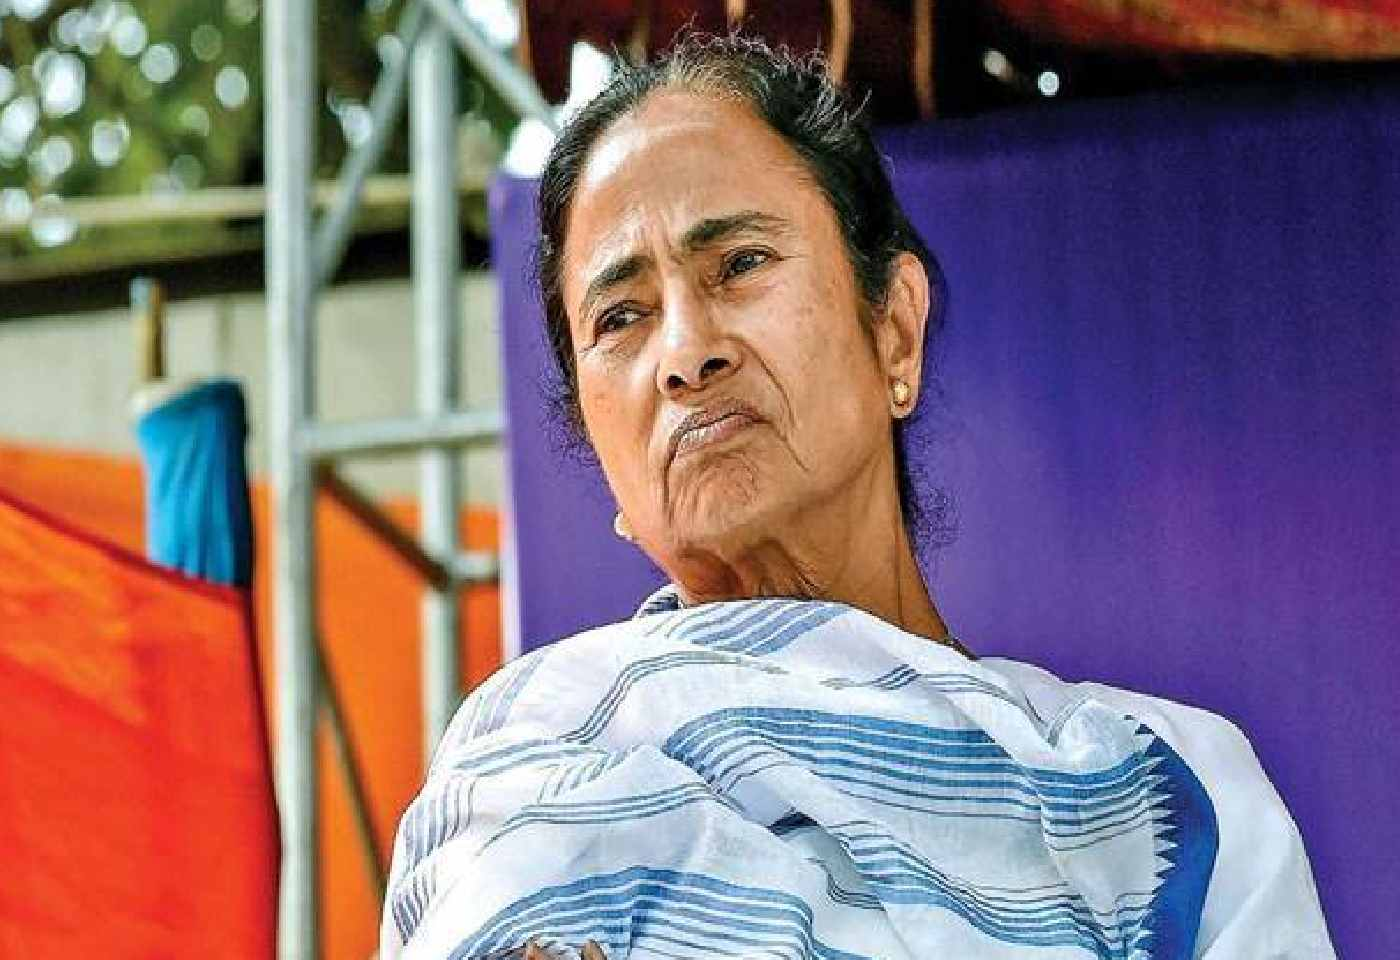 Nandigram election case Mamata Banerjee gets a big blow from HC, fined 5 lakhs